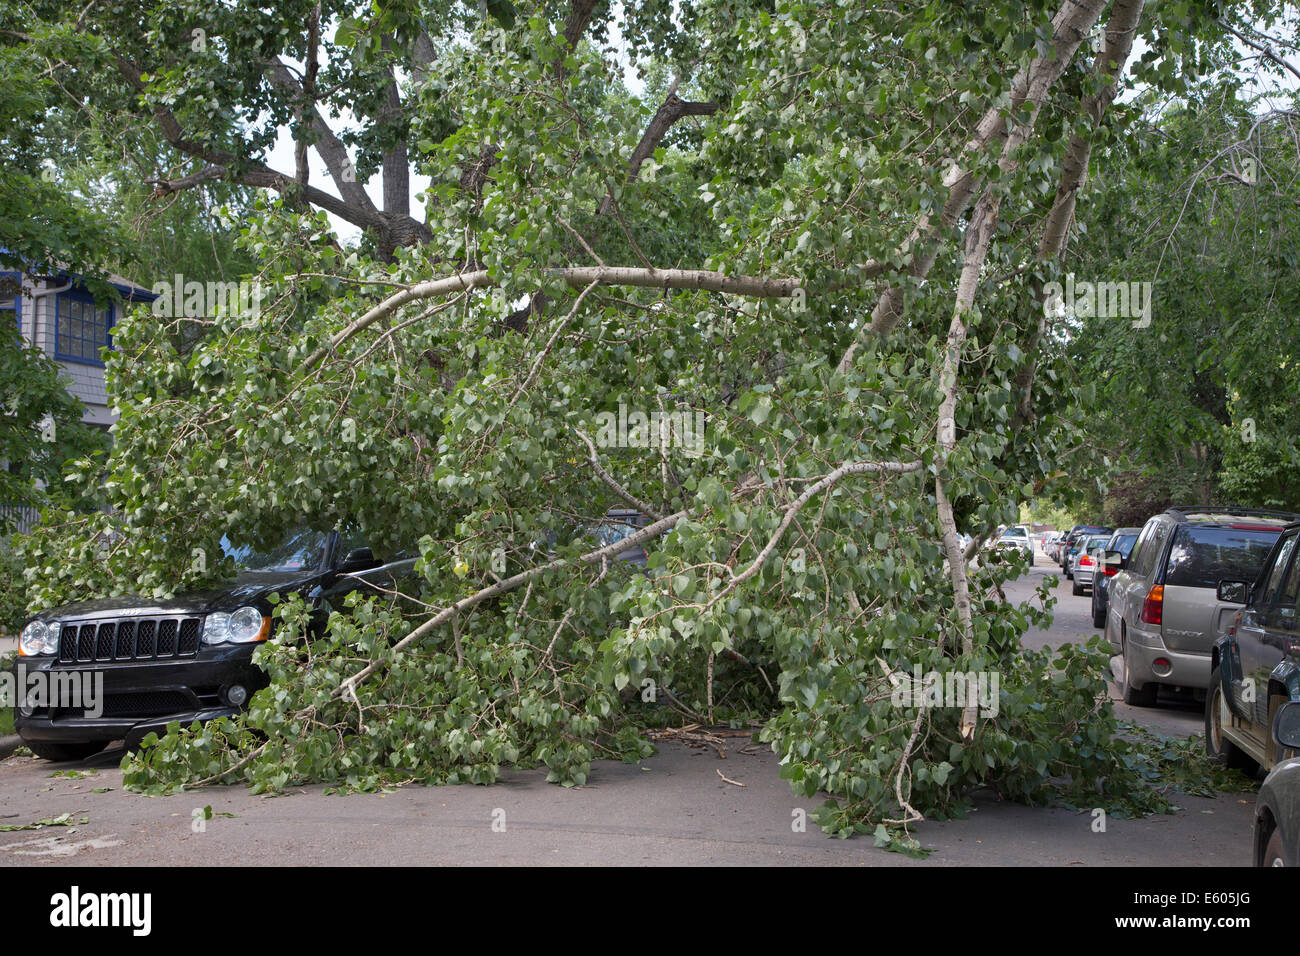 Vehicle underneath fallen cottonwood tree branch on city street after wind storm Stock Photo